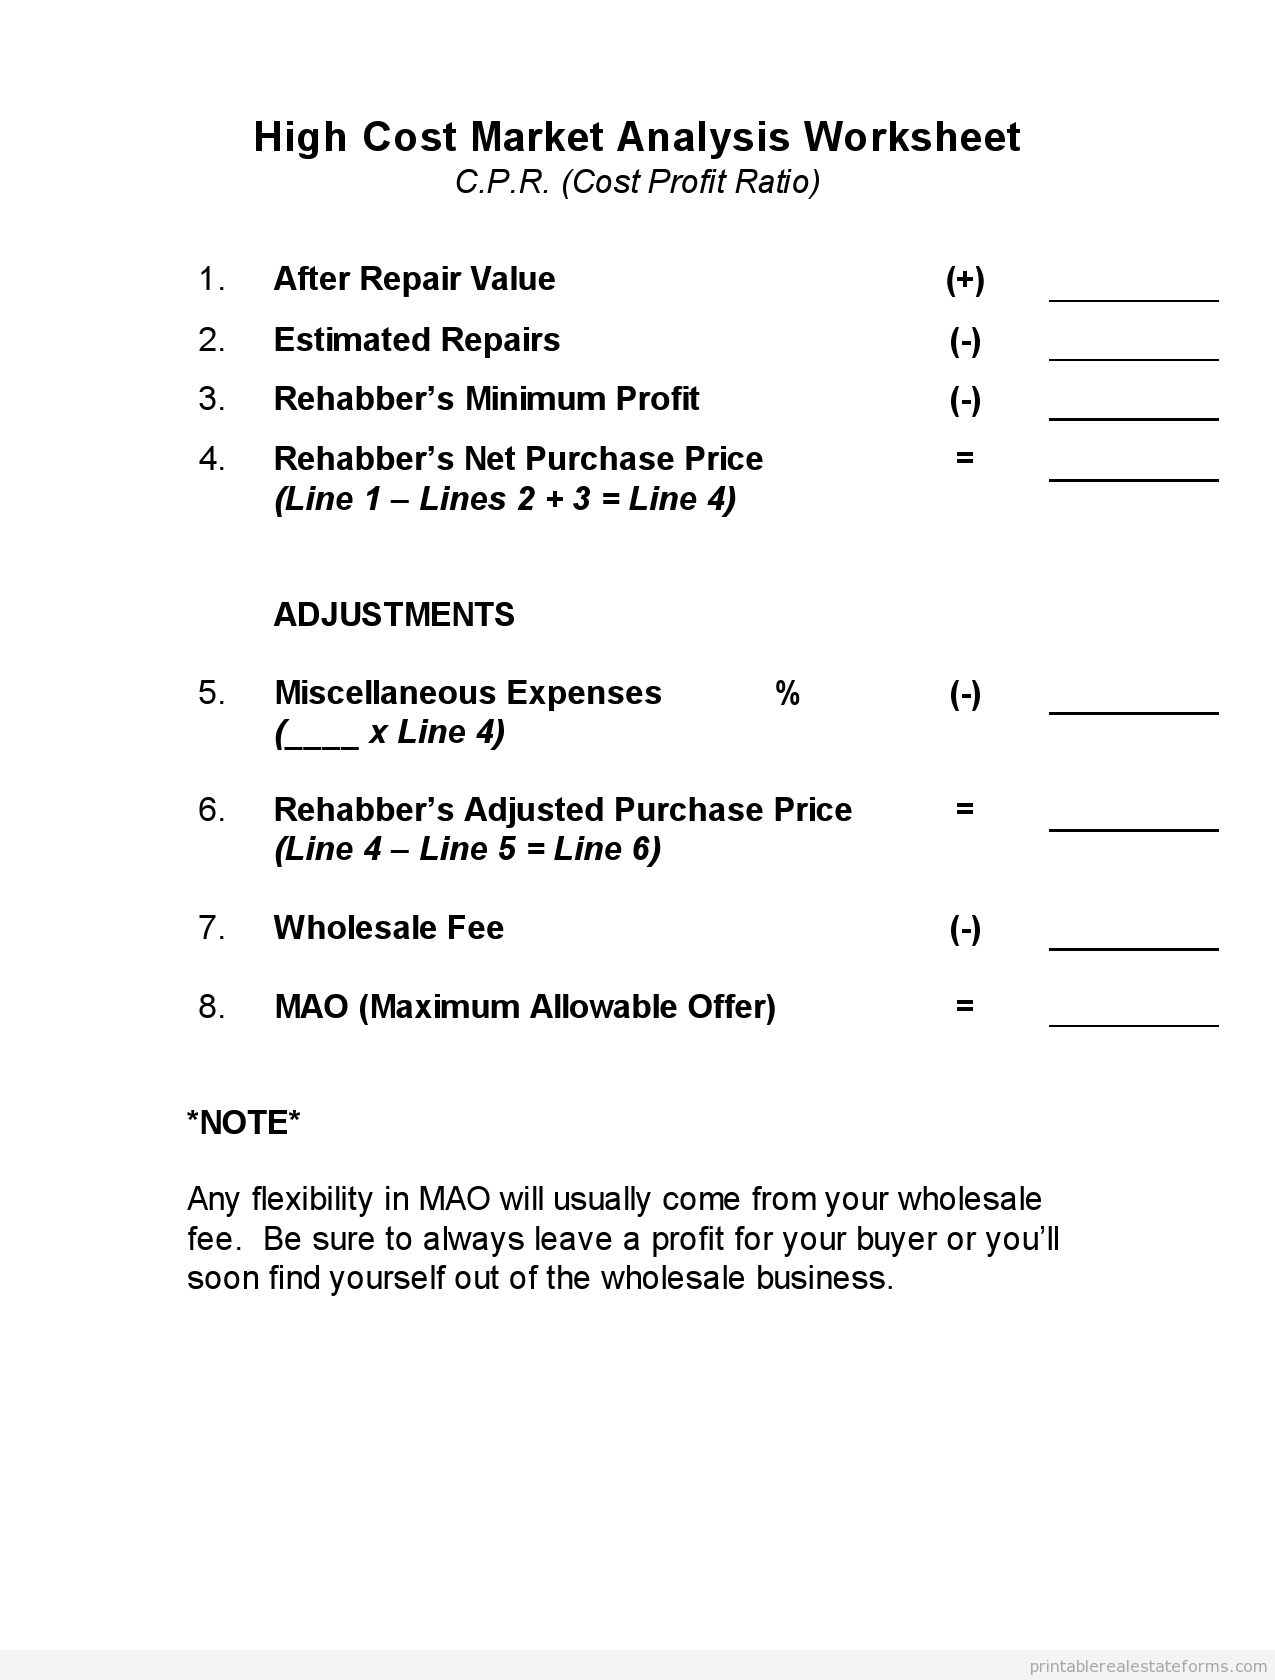 Printable High Cost Marketysis Worksheet Template